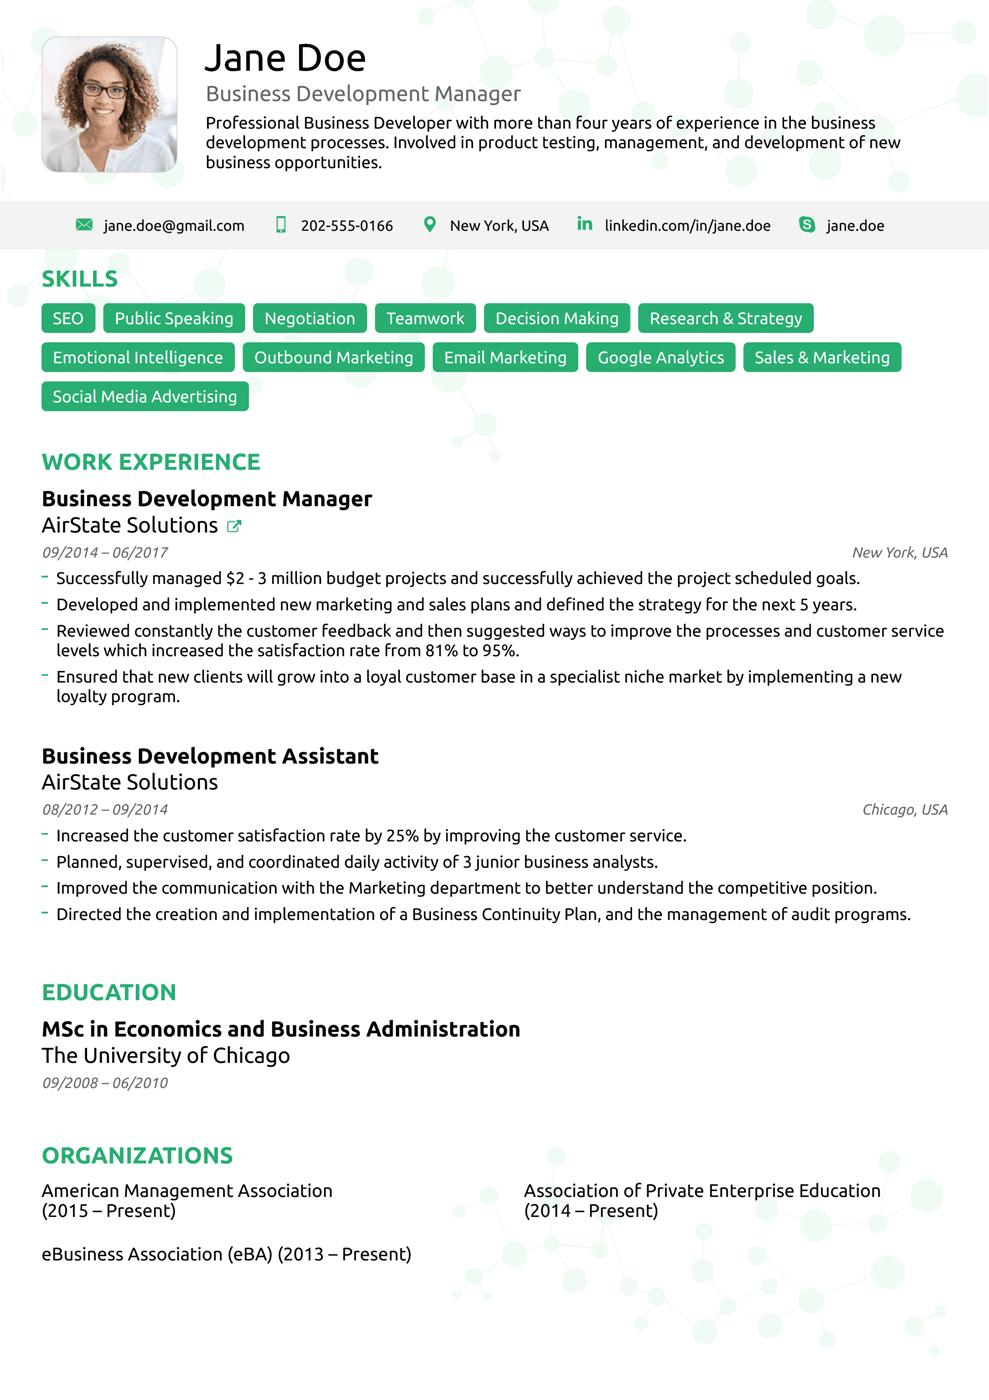 76 Cool Latest Resume Layout for Images